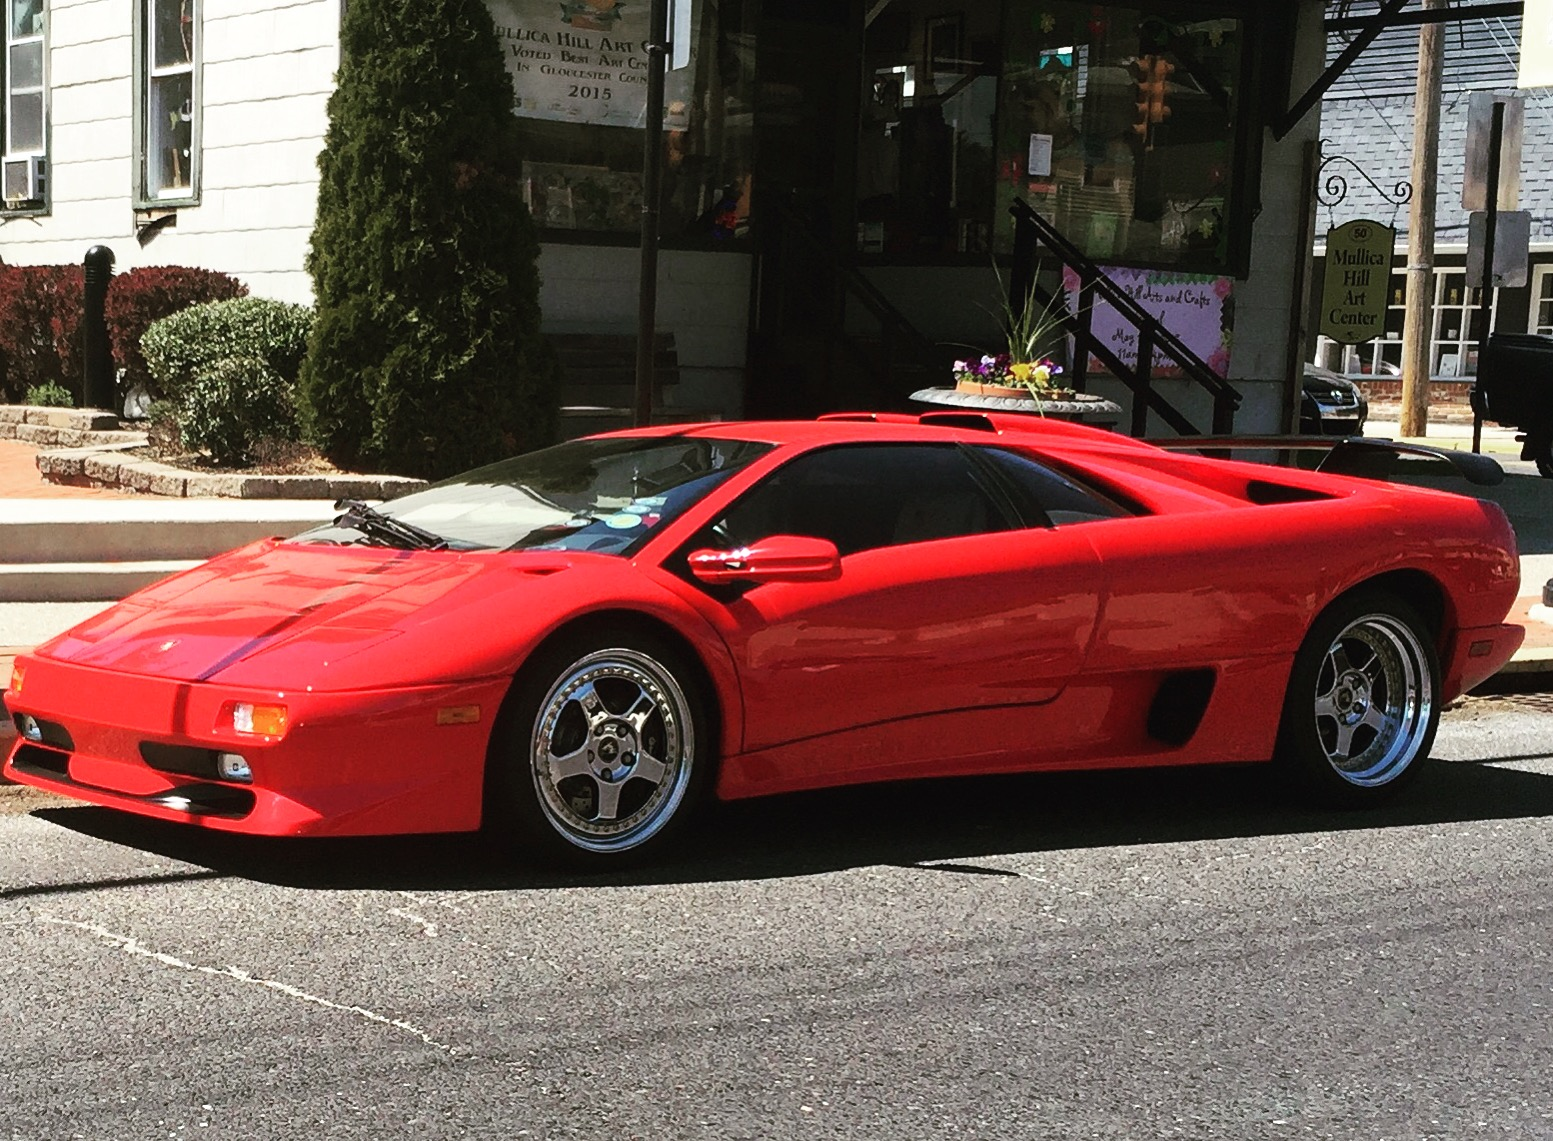 An Older Lamborghini Diablo I Spotted In My Town